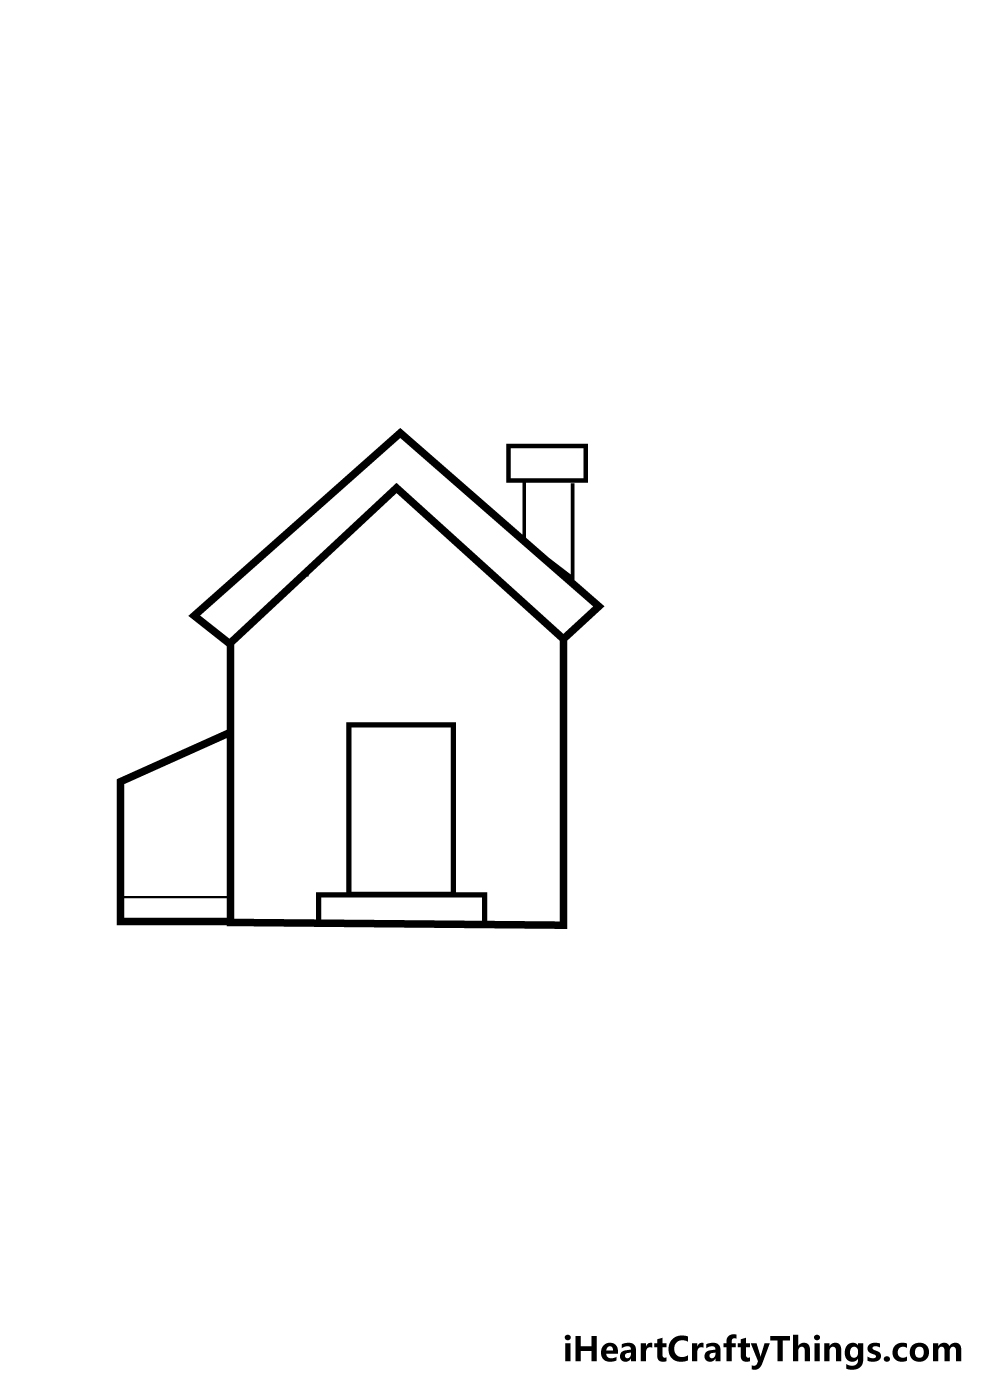 house drawing step 4